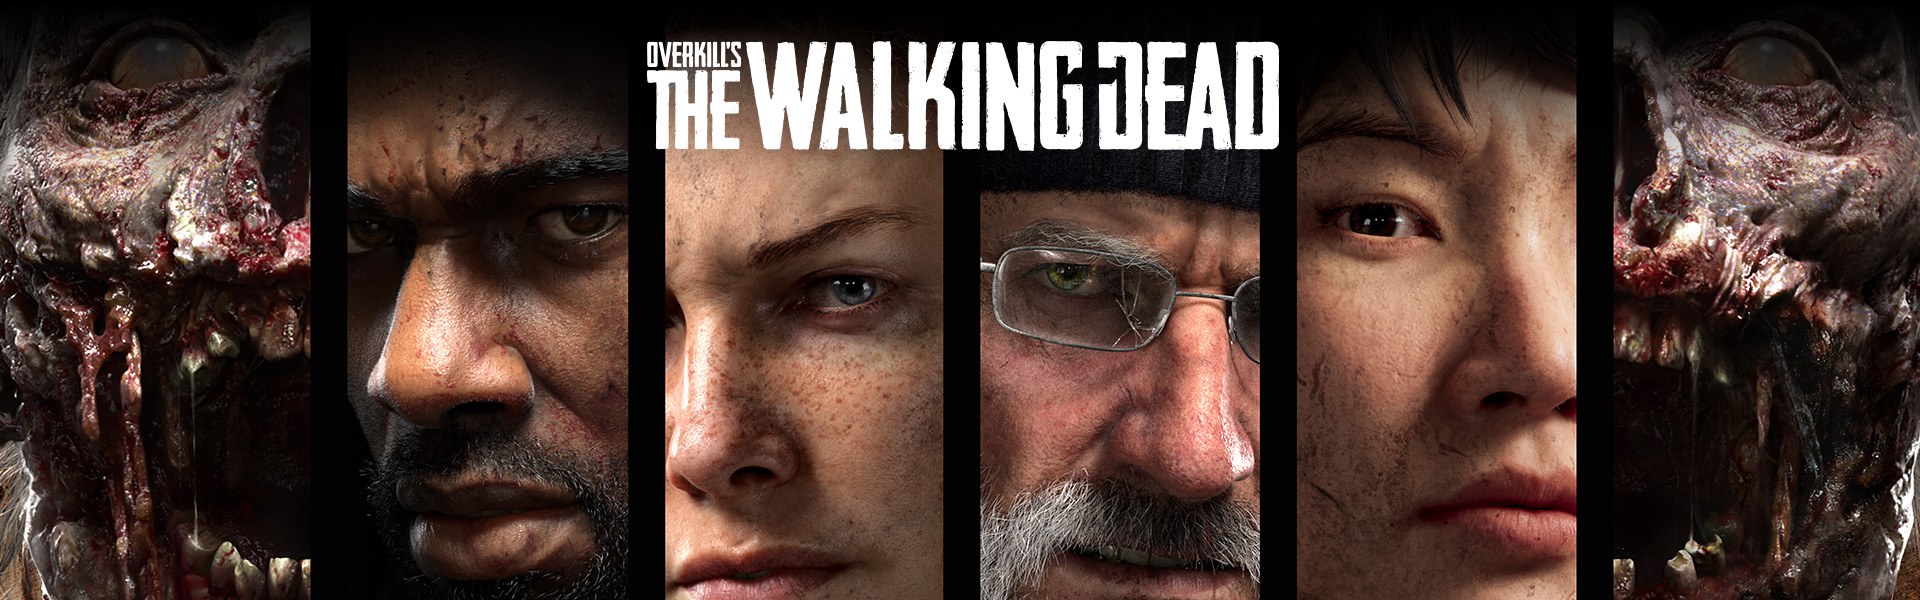 Overkill's the walking dead, close-up view of four human and two zombie faces